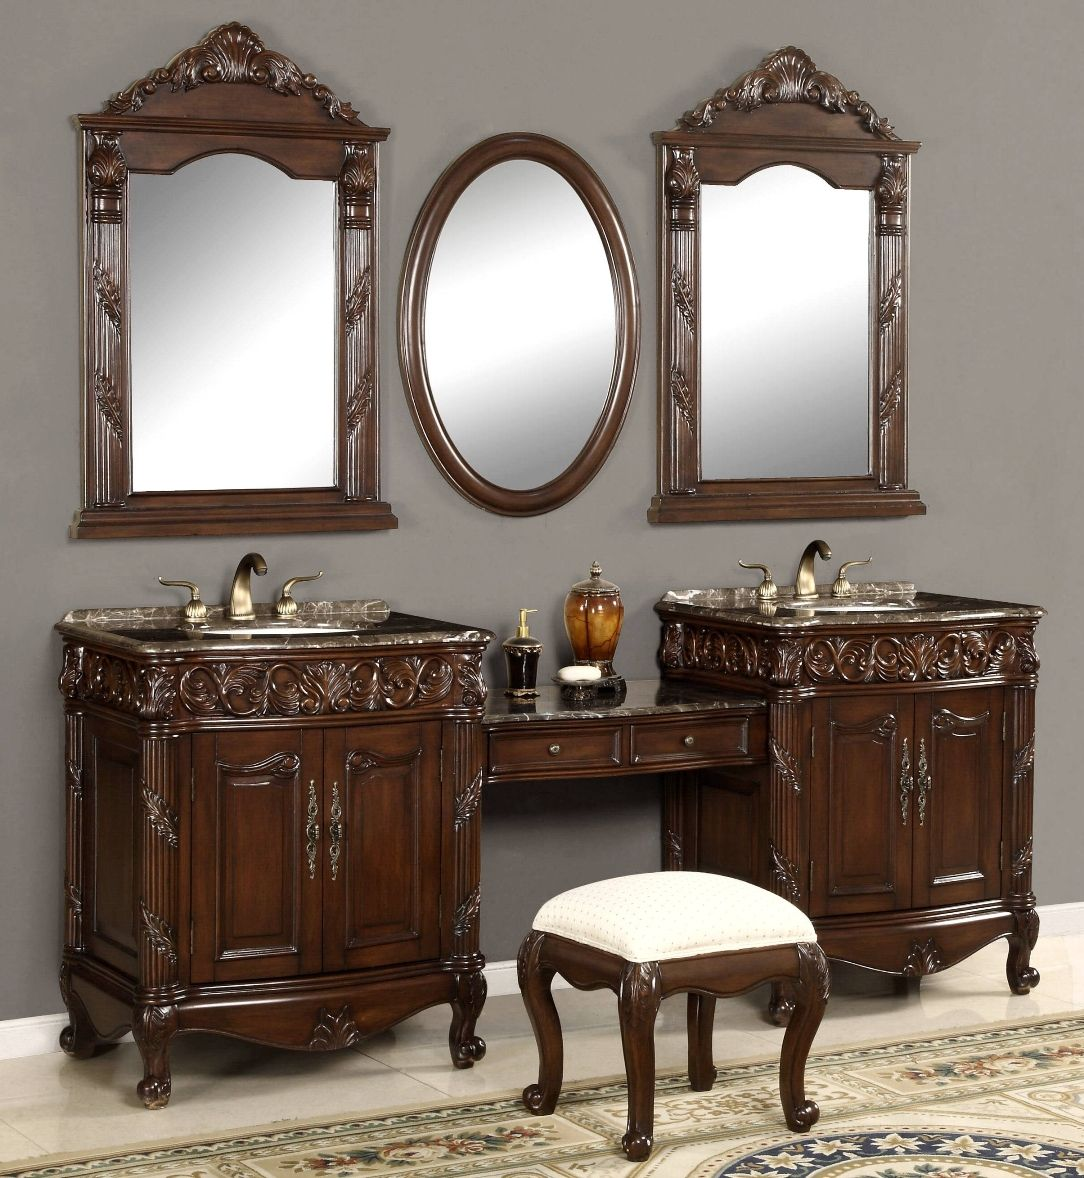 Bathroom Vanity Table unique double vanity sink | 87-inch double vanities | vanity make